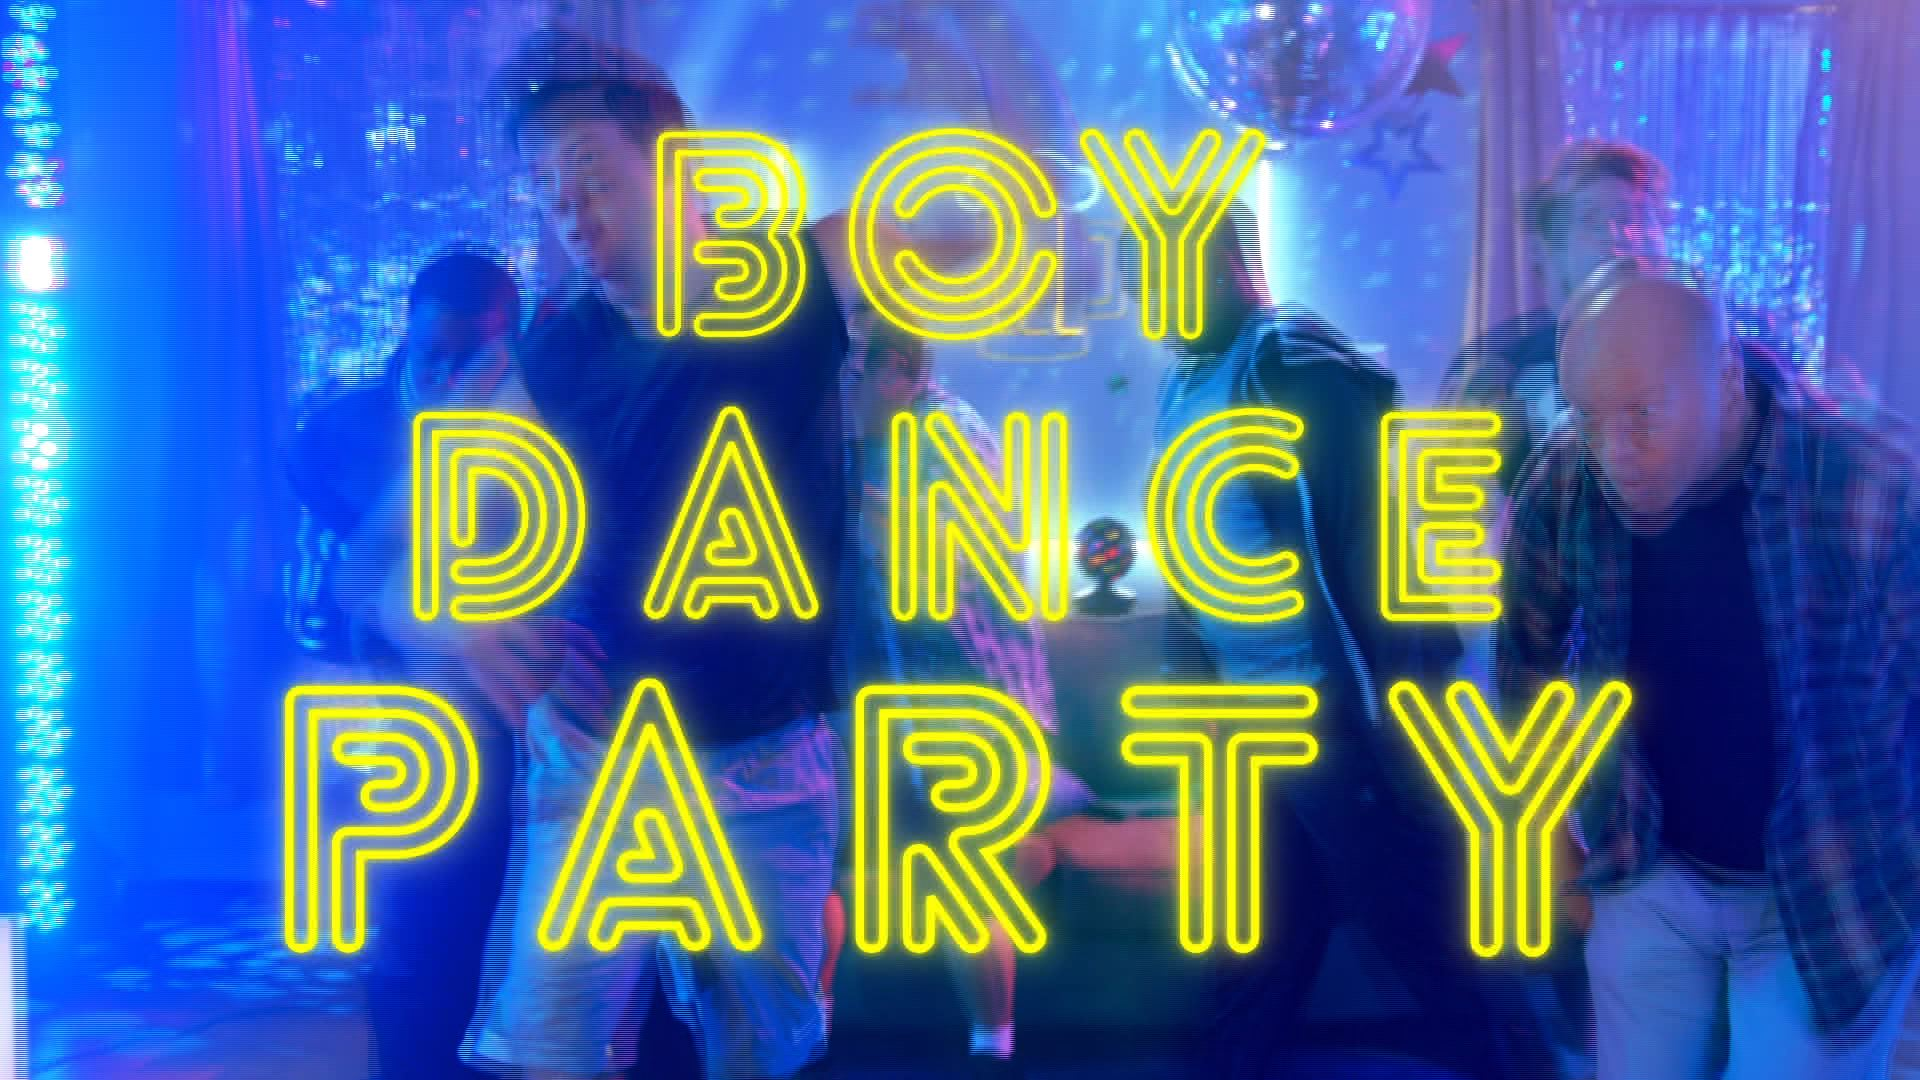 watch boy dance party from saturday night live nbccom